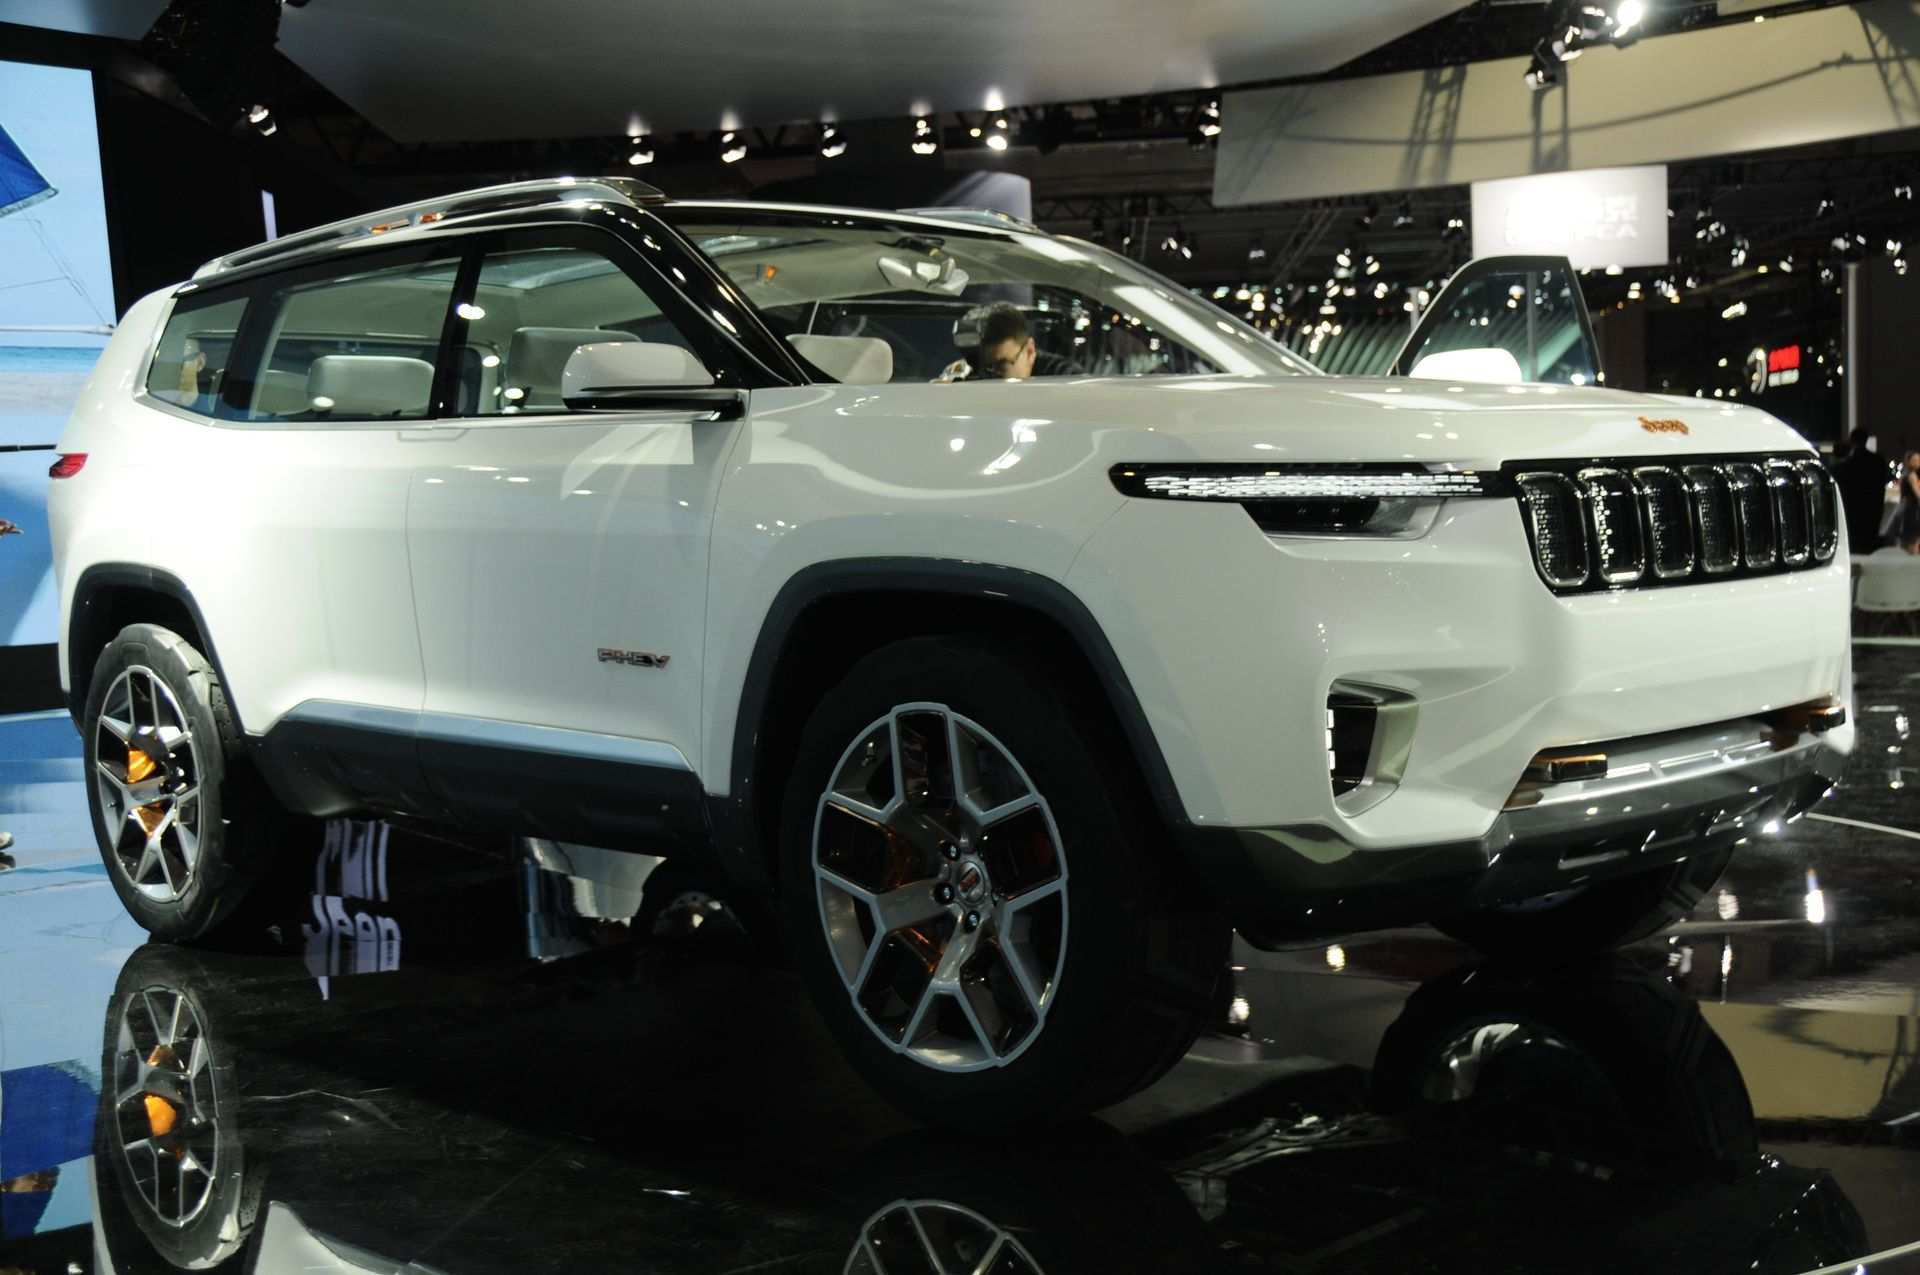 25 Great 2019 Jeep Yuntu Images for 2019 Jeep Yuntu